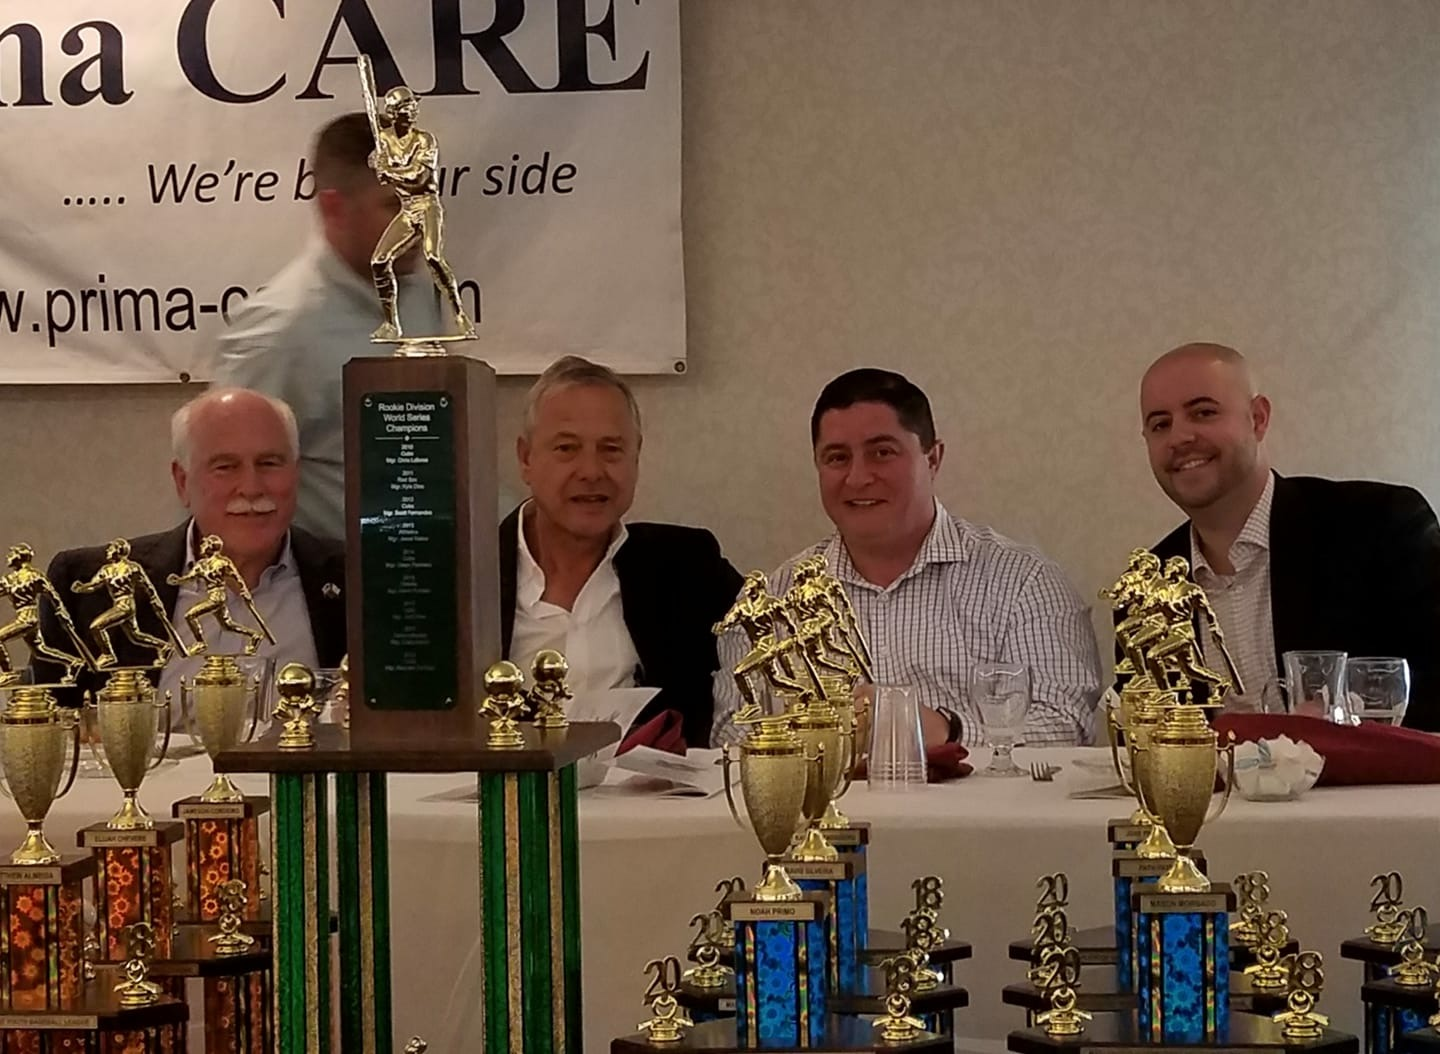 Maplewood Baseball Awards Banquet, the largest in Fall River (pictured here with Sheriff Hodgson, School Committee Member Kevin Aguiar, and City Council President Cliff Ponte)